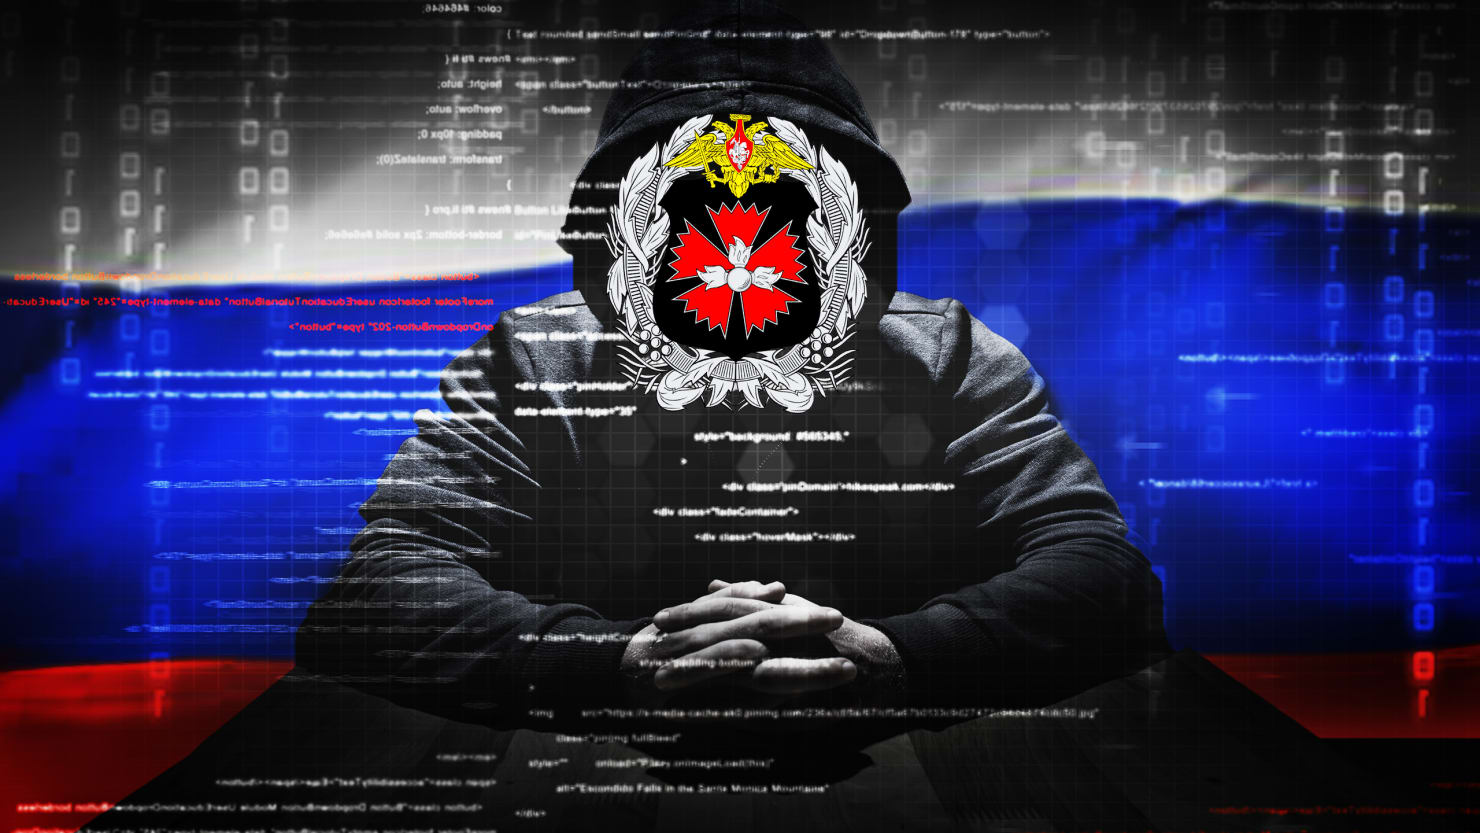 Lone DC Hacker wass Russian intel officer